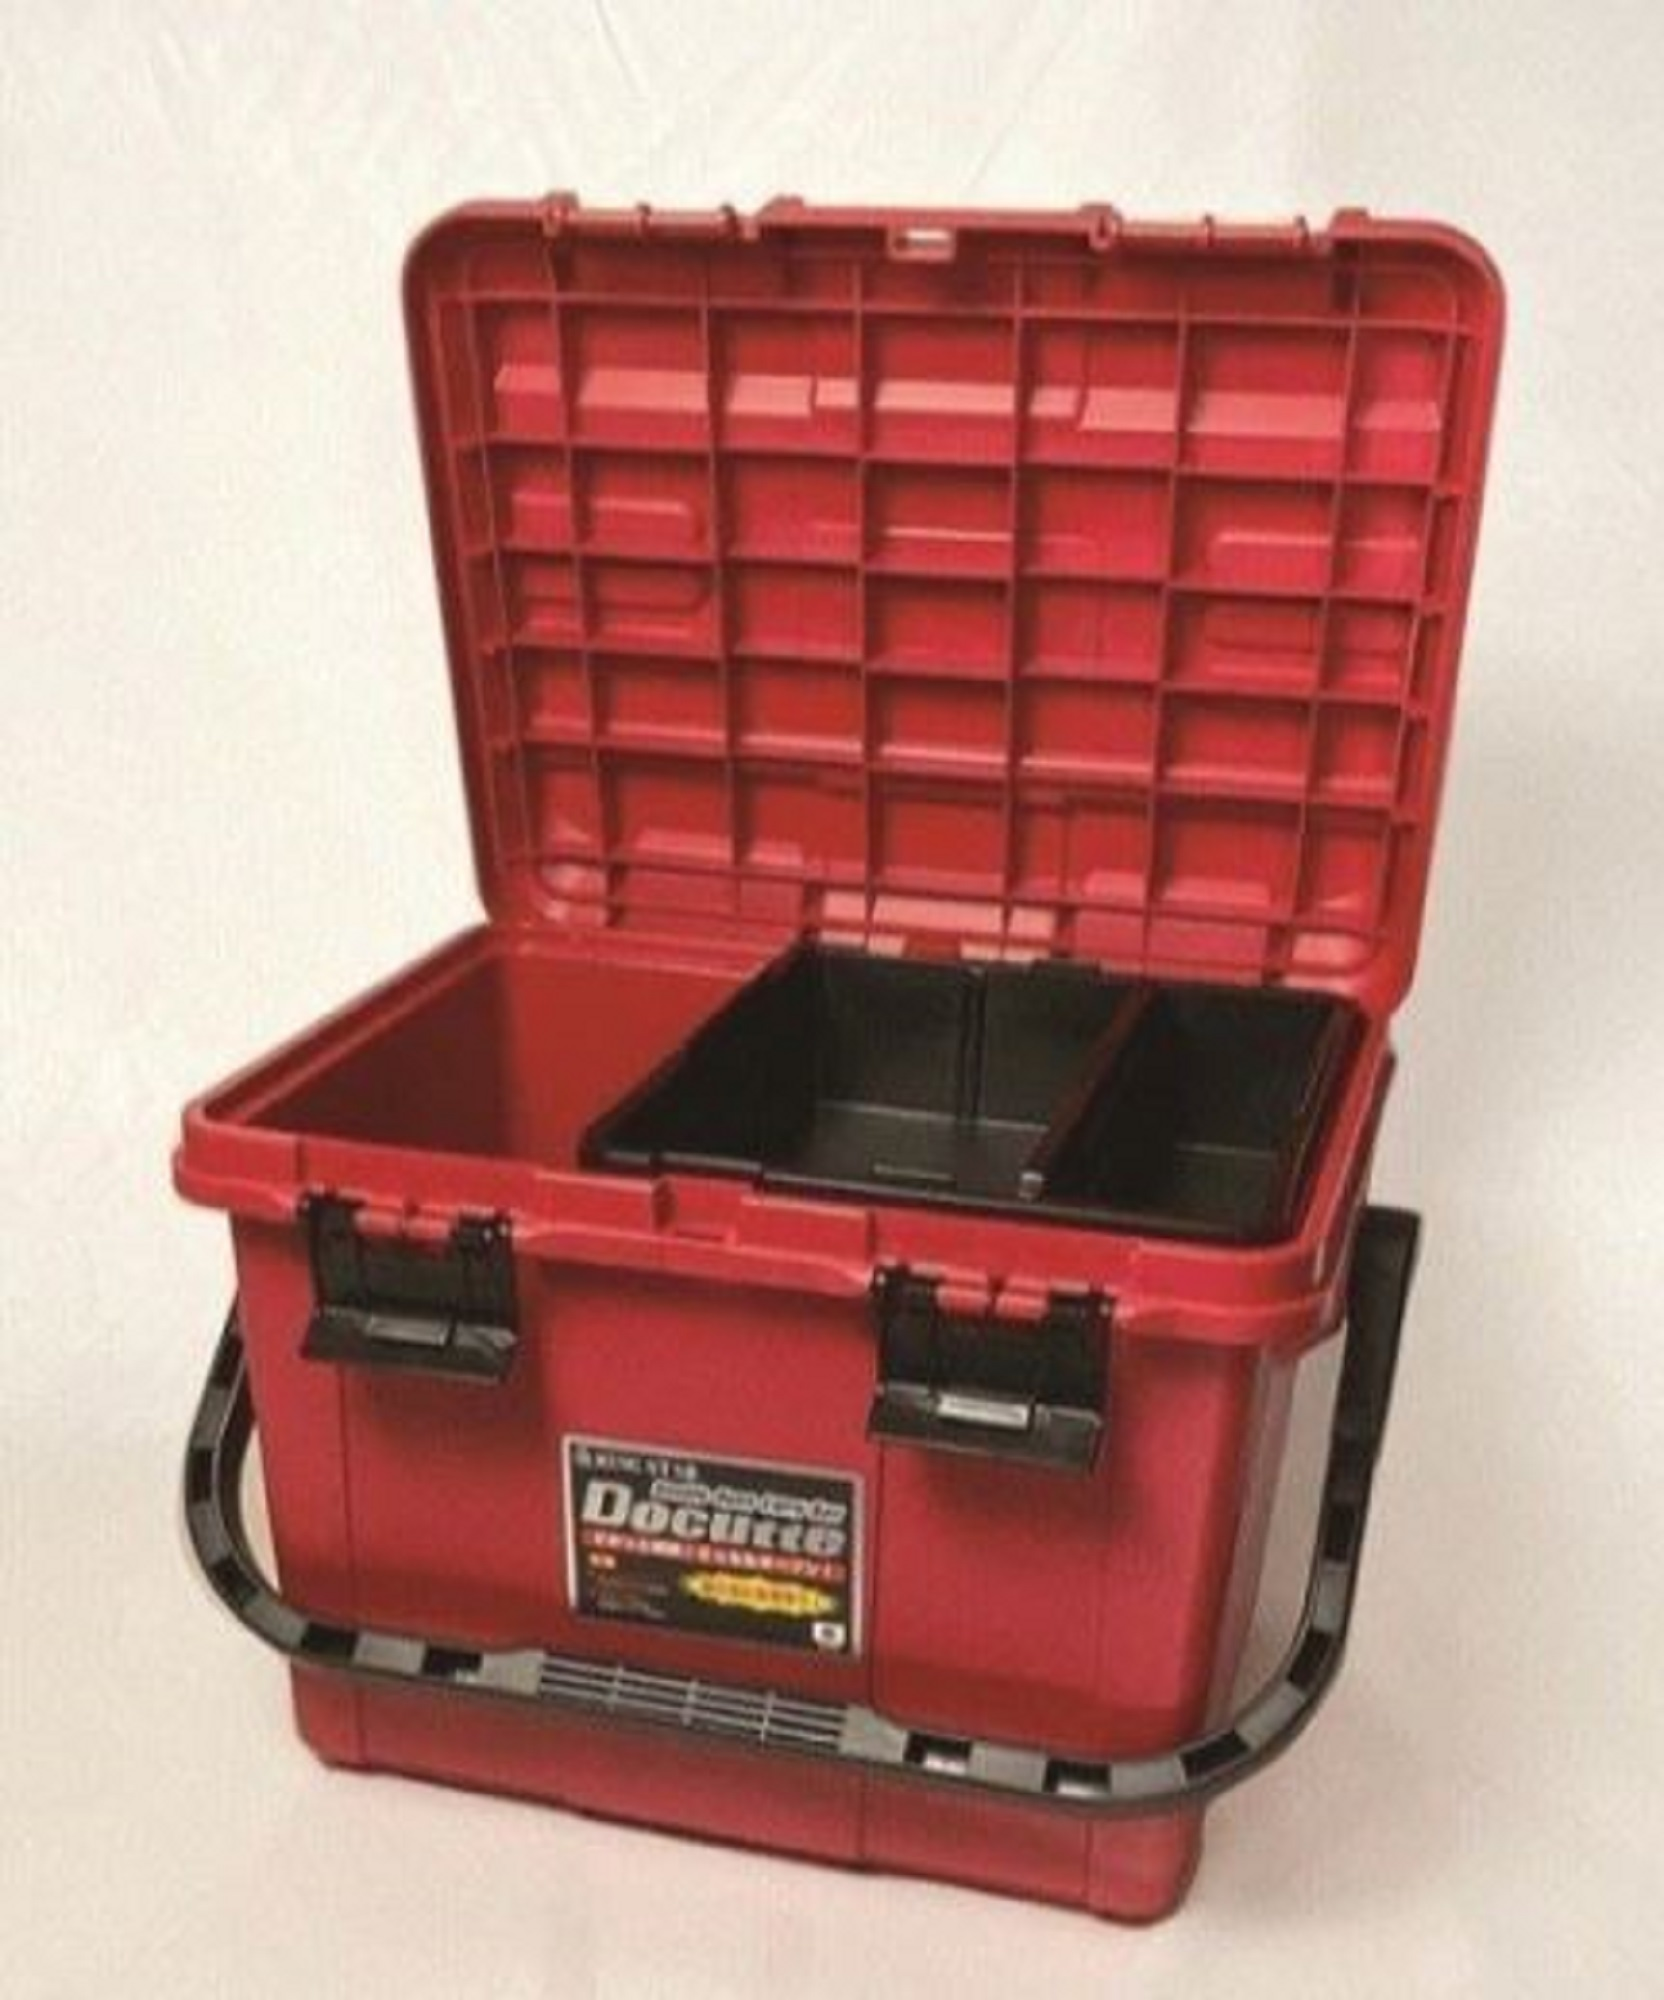 Ring Star Docutte D-5000 RB Tackle Box 538 x 359 x 347 mm Red Blk 7374